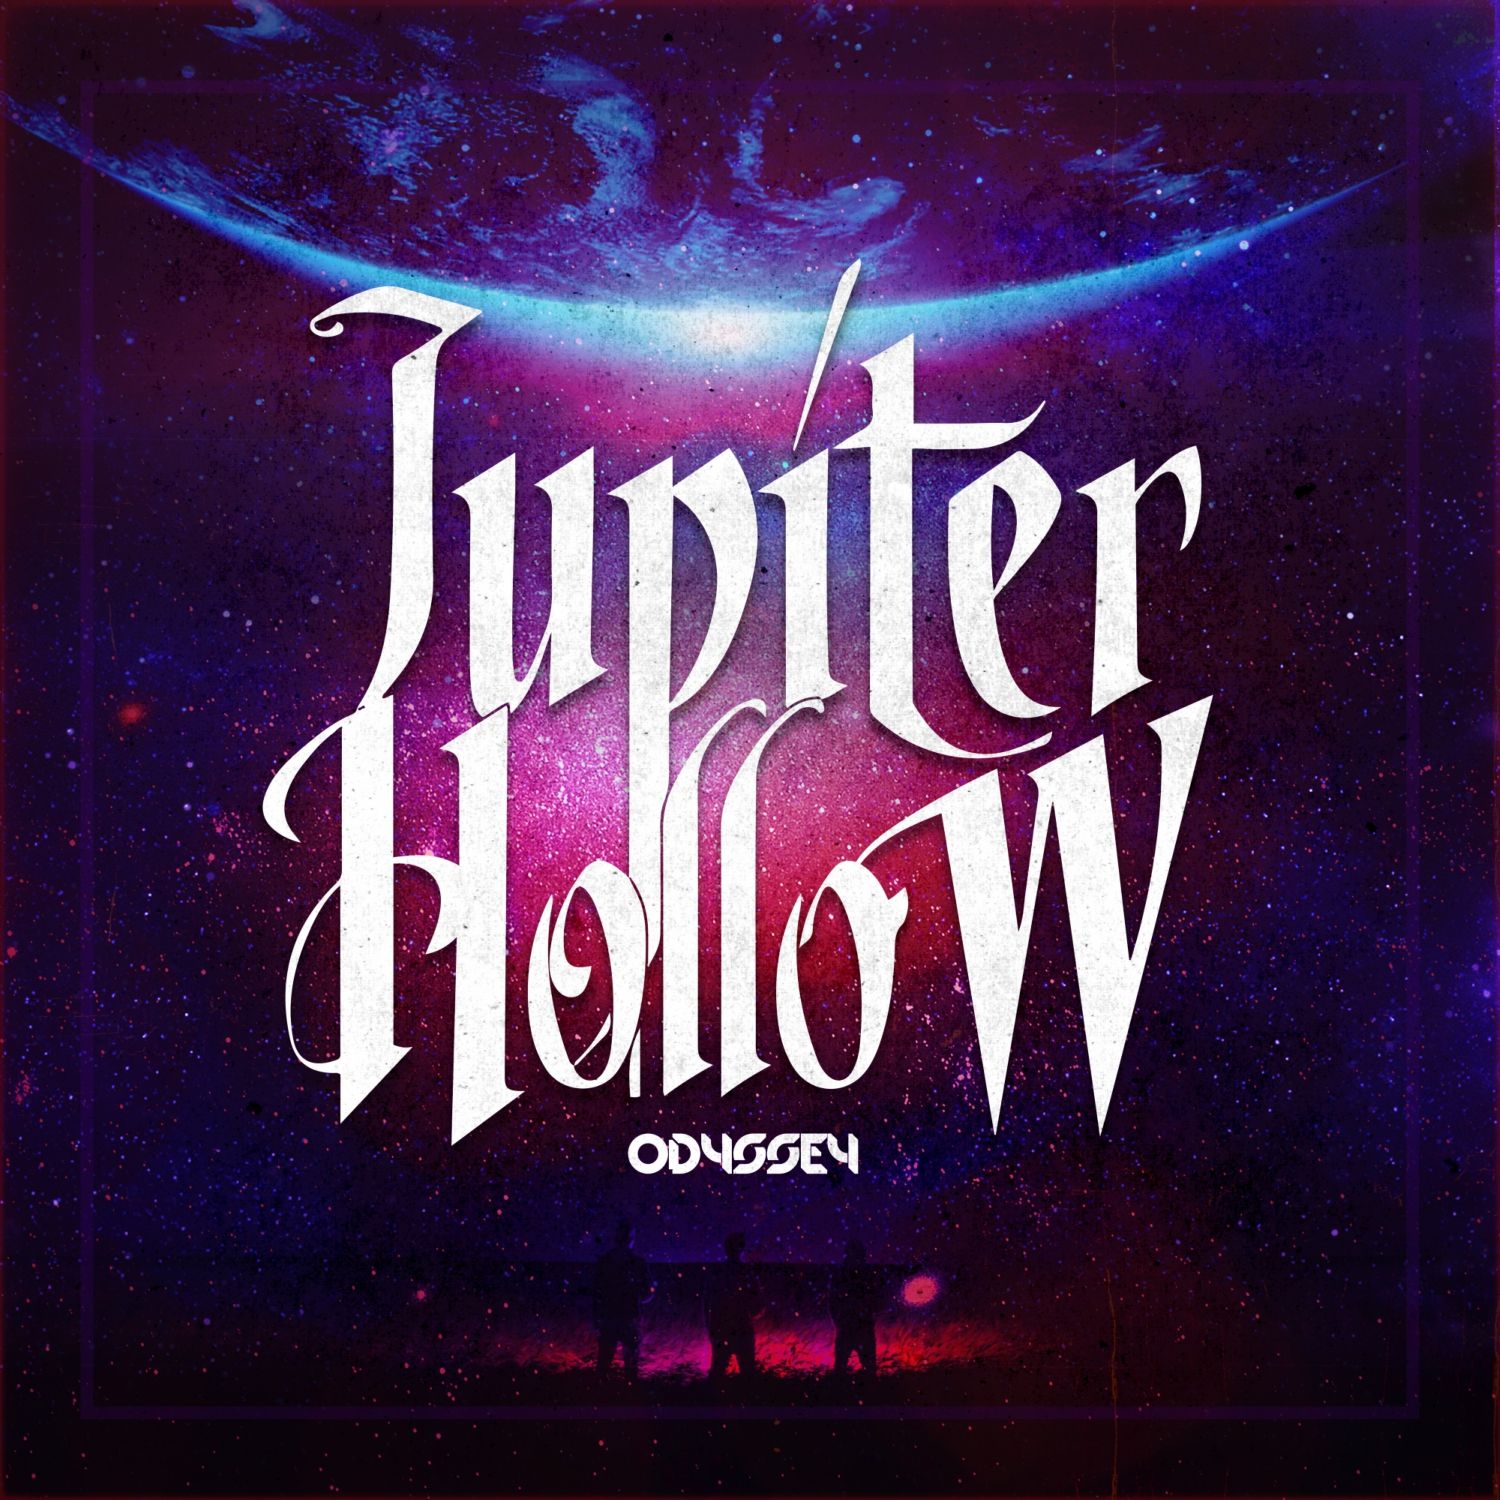 Music Video Premiere of Deep In Space by Toronto Prog Jupiter Hollow